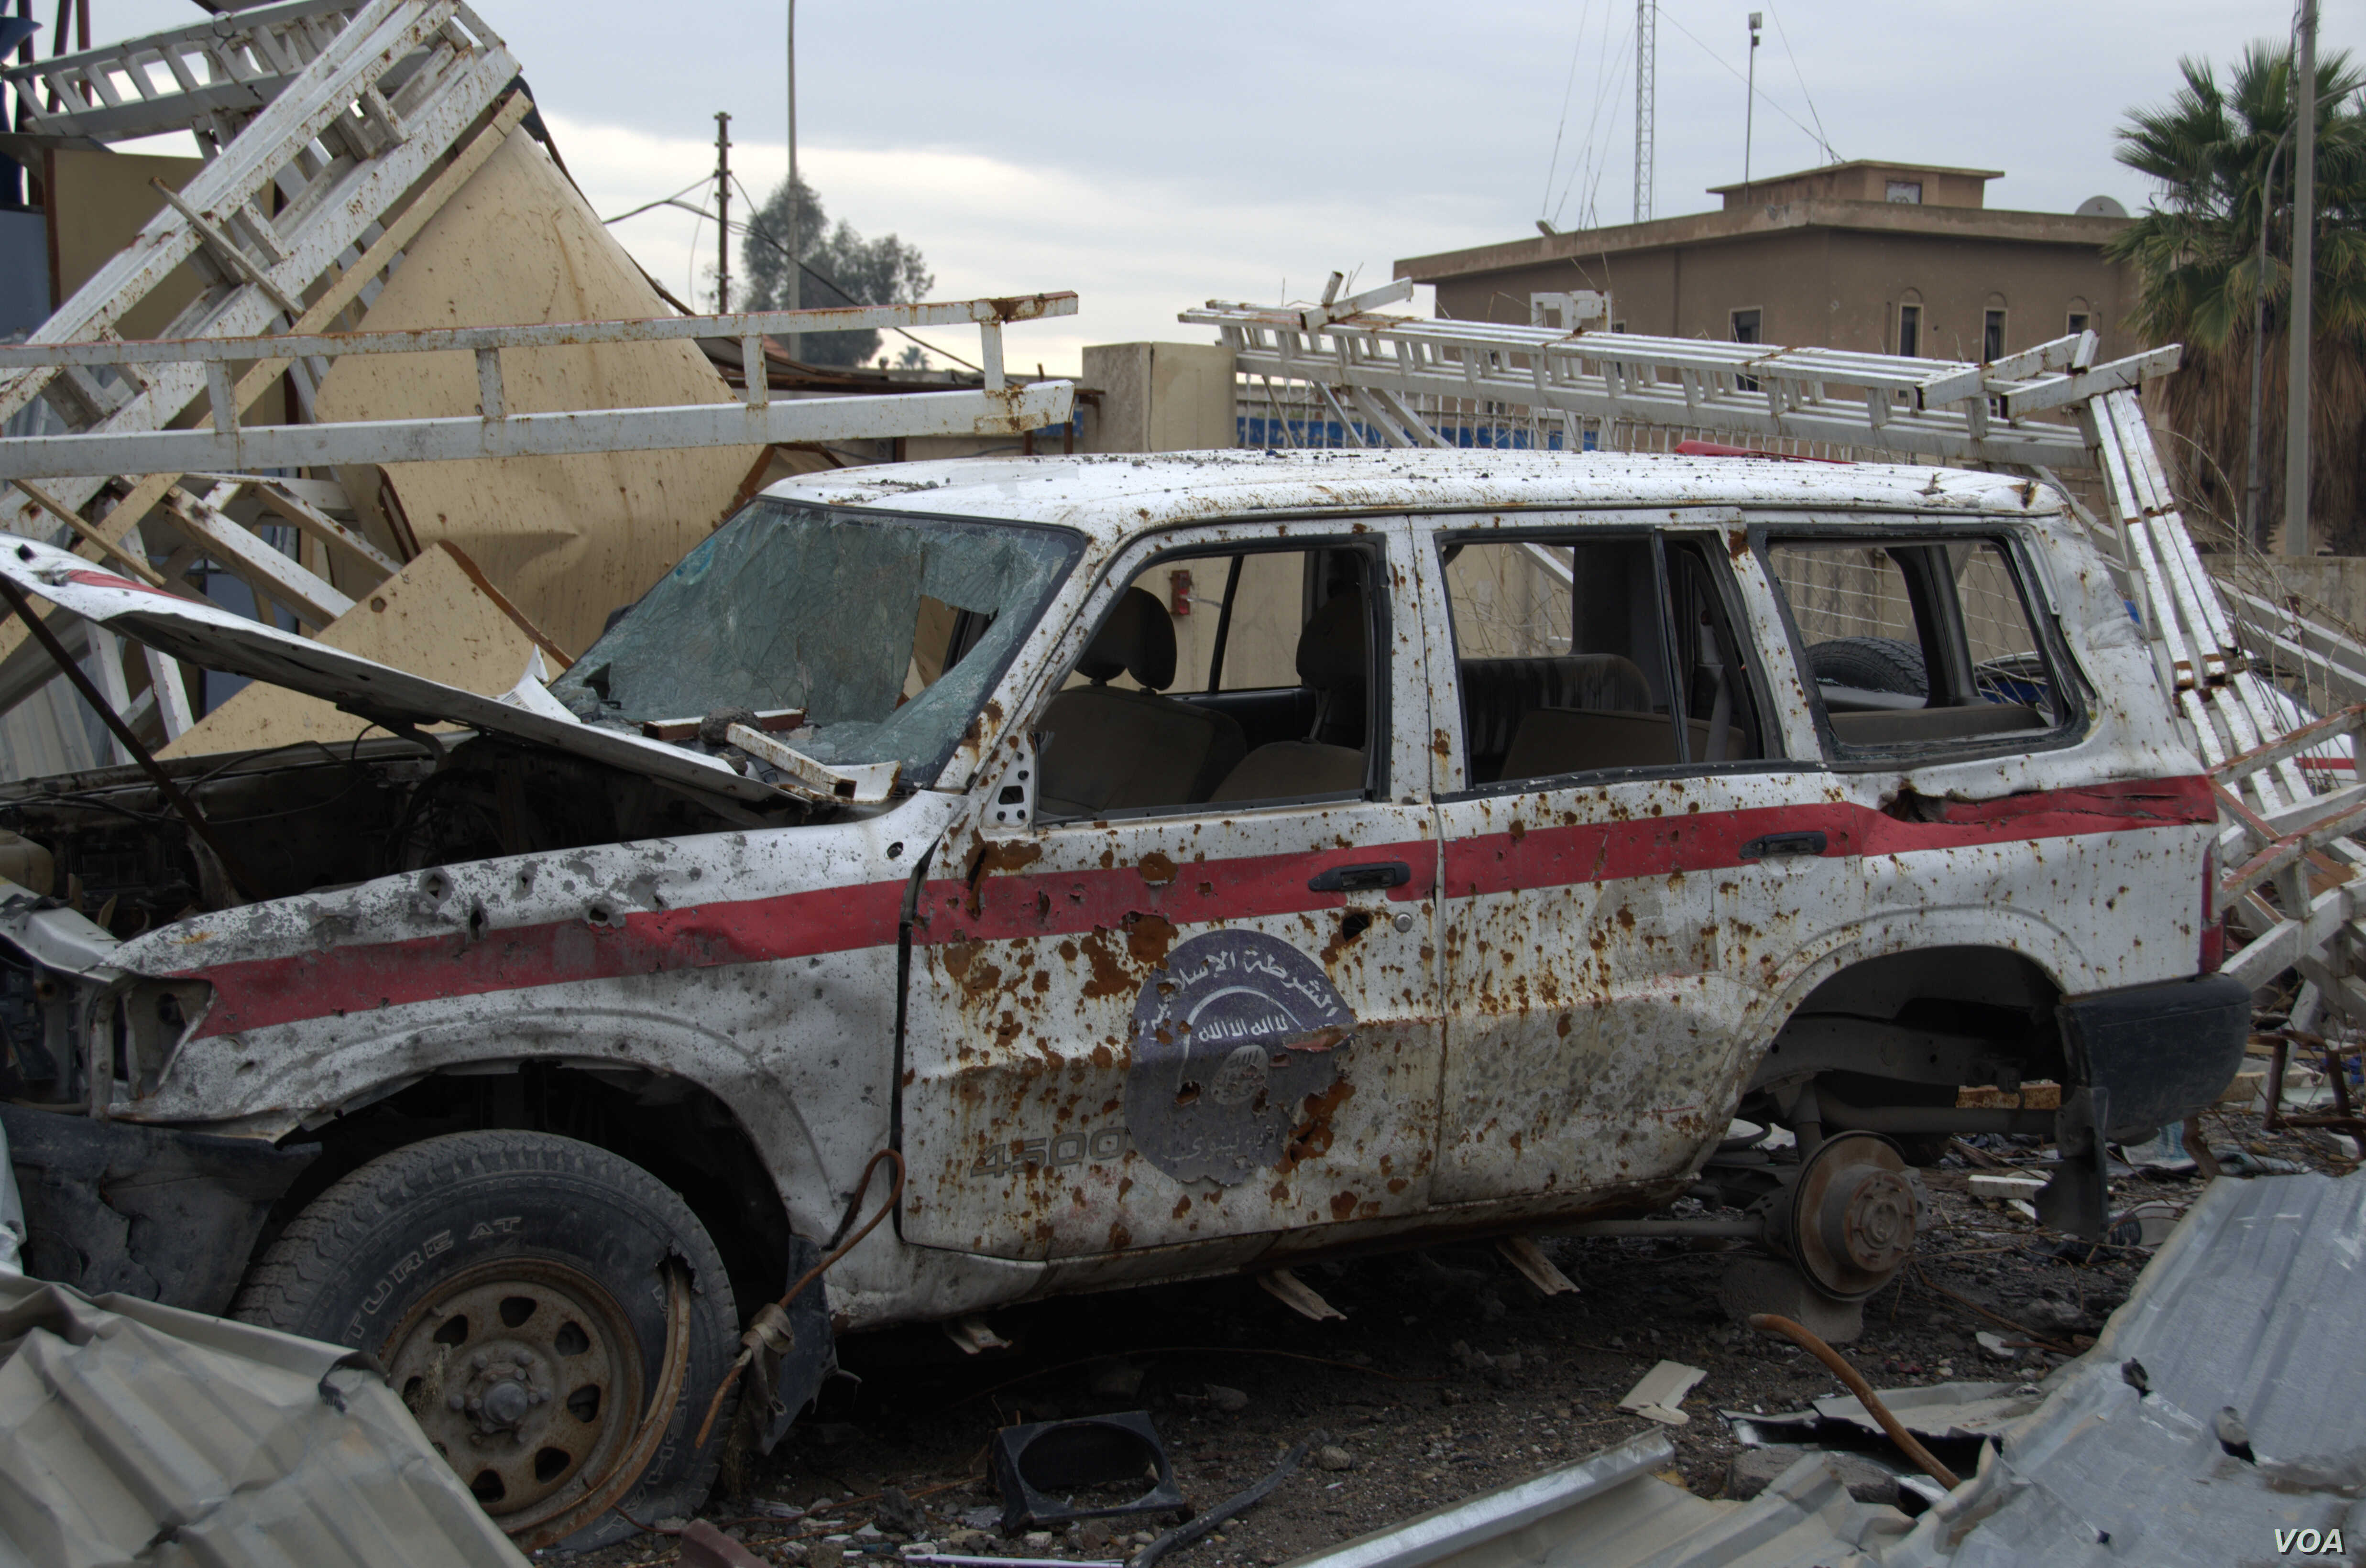 IS militants leave a wave of destruction as they are beaten back by Iraqi and coalition forces, including this IS police car, stolen from Iraqi police and relabeled as Islamic State, in Mosul, Iraq, March 23, 2017. (H.Murdock/VOA)